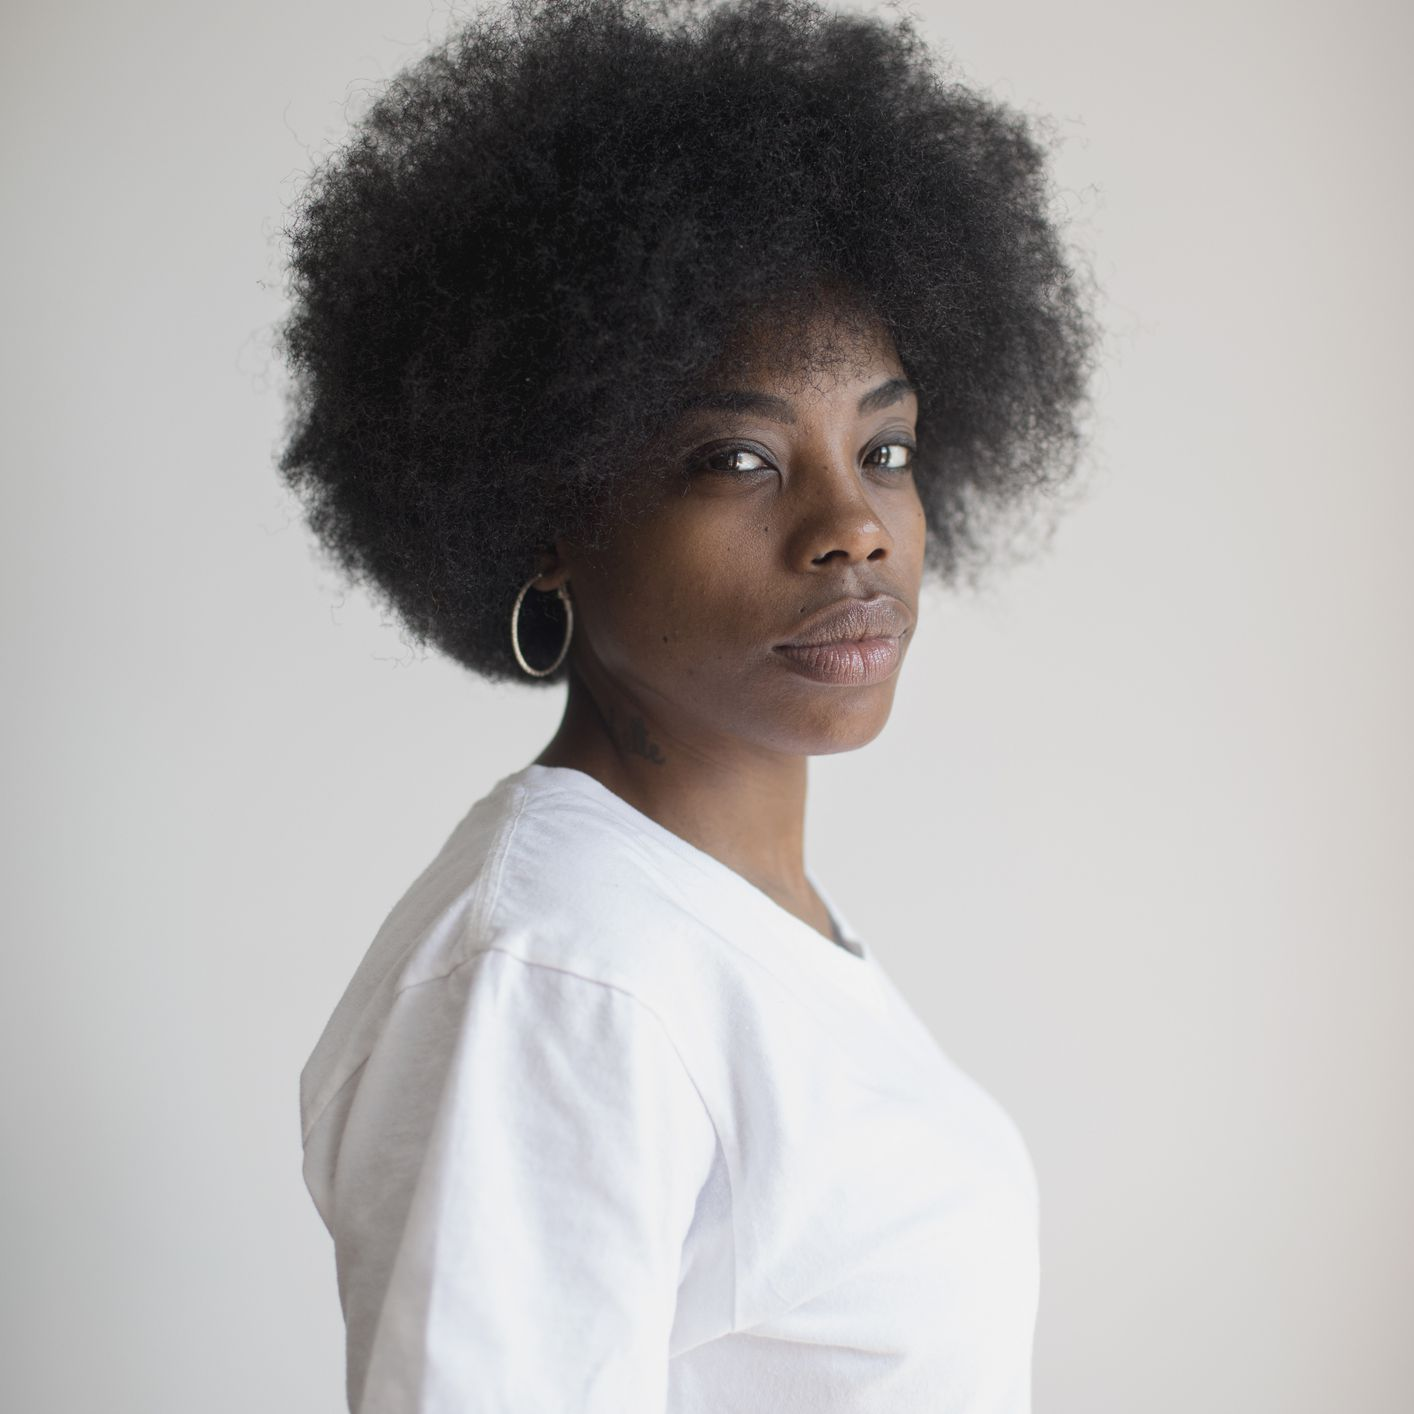 Young Black woman with medium length afro